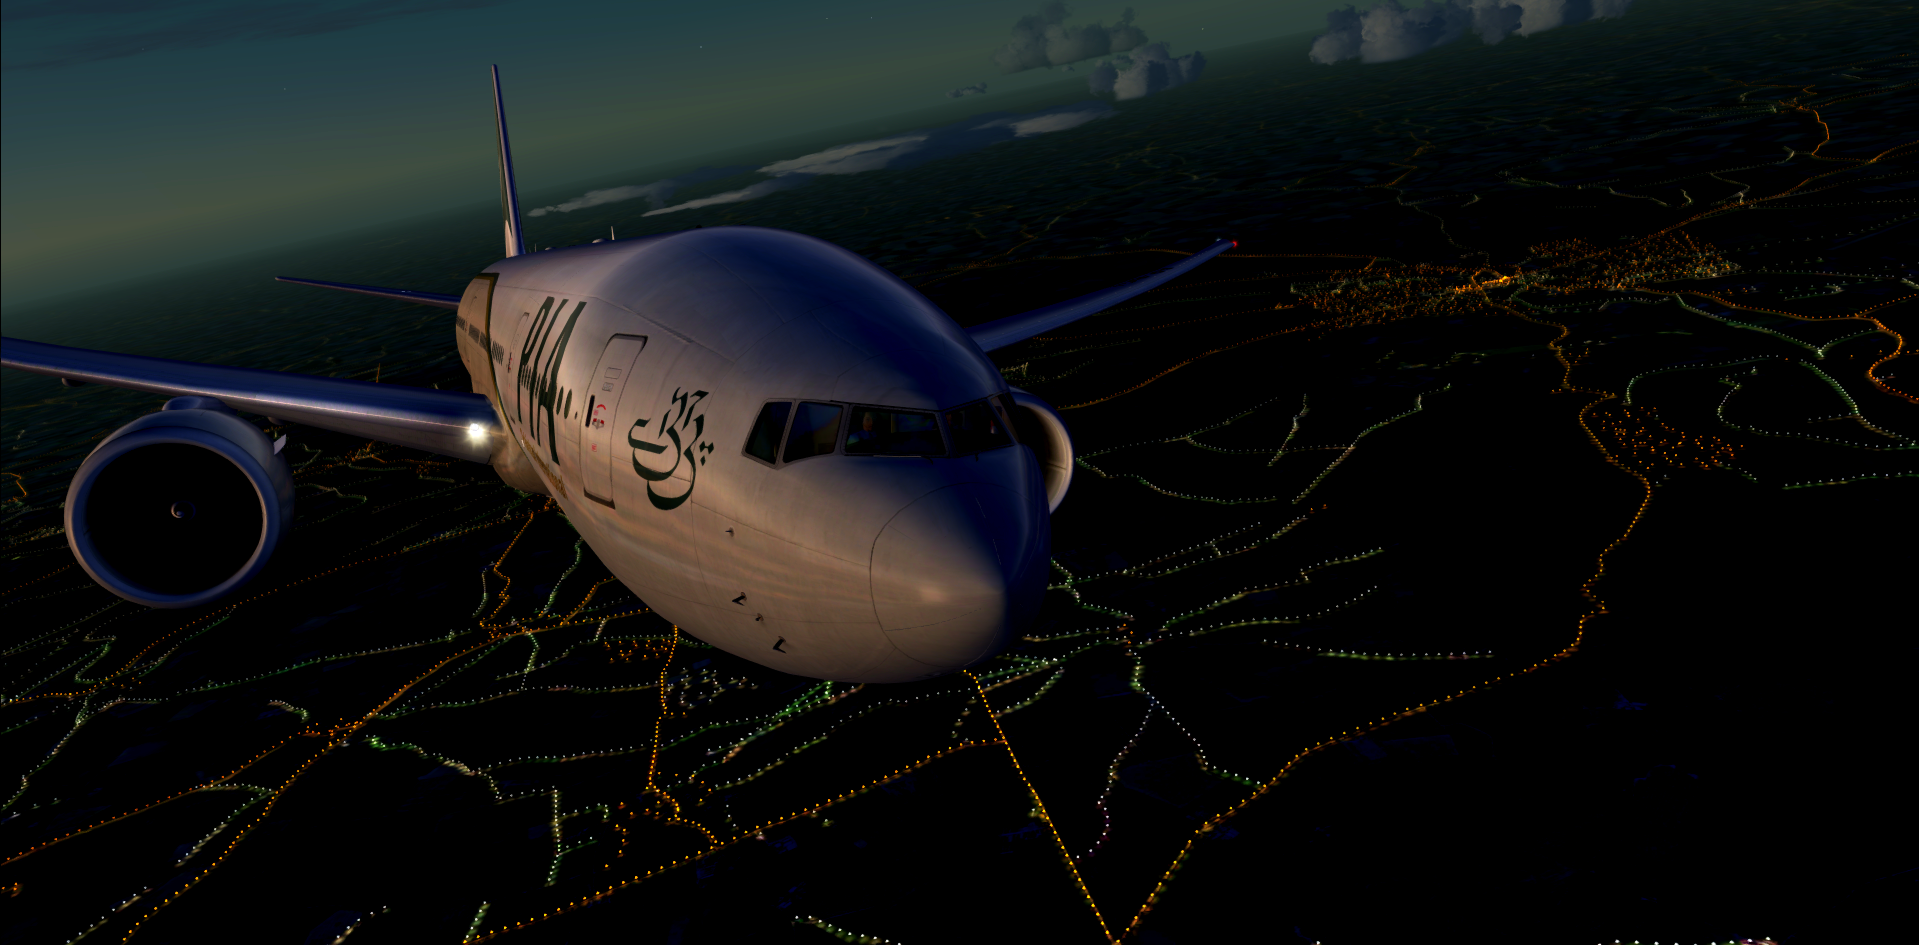 fsx%202014-05-15%2011-12-56-190.png